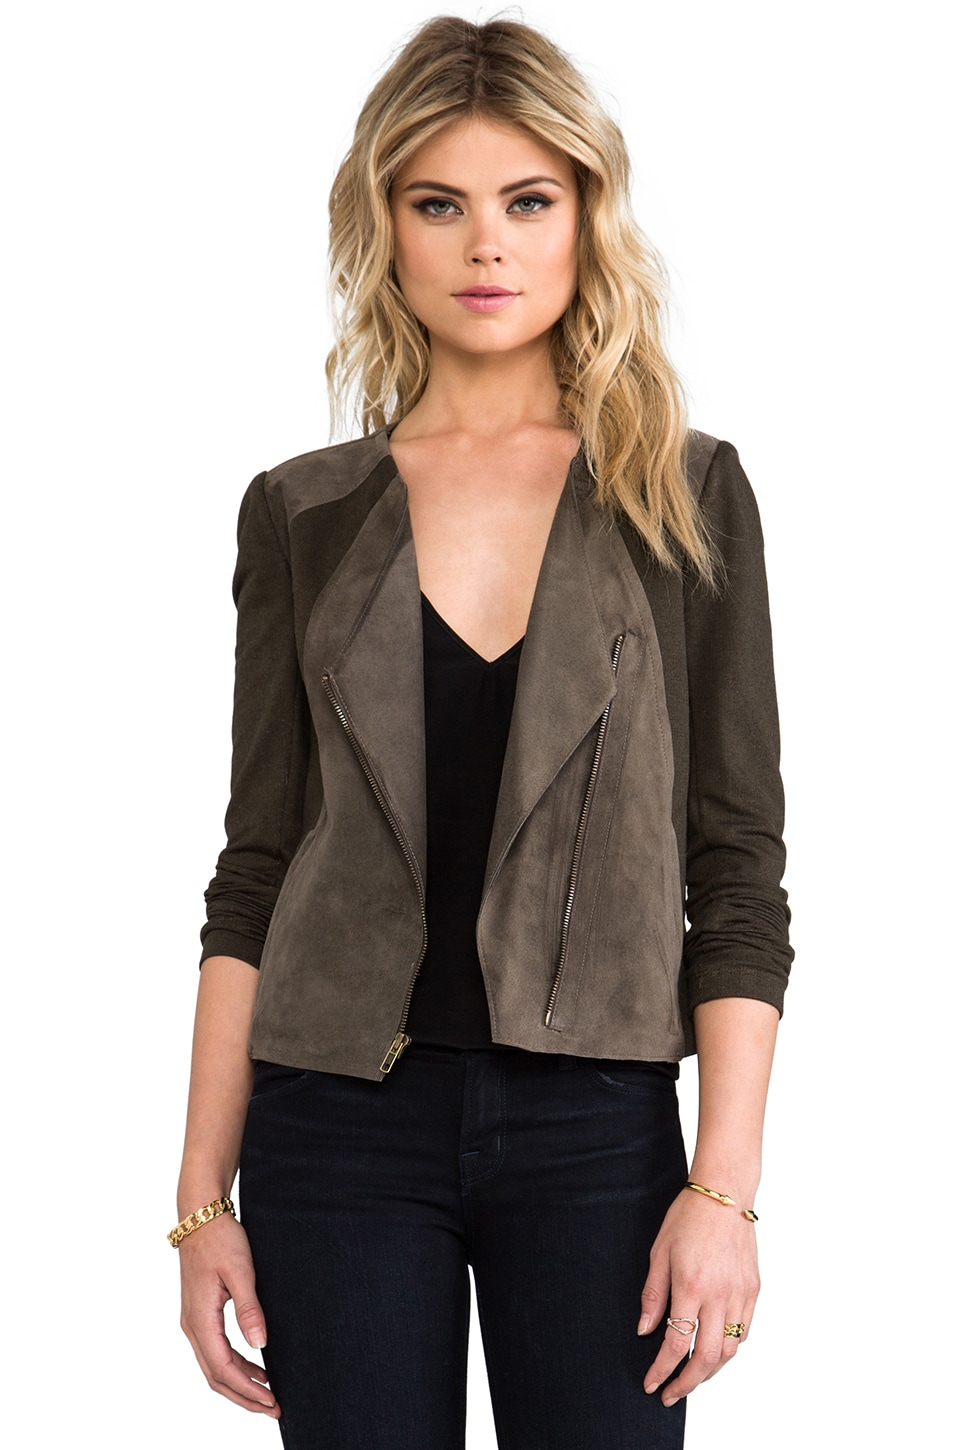 Bailey 44 Jave Jolt Jacket in Army